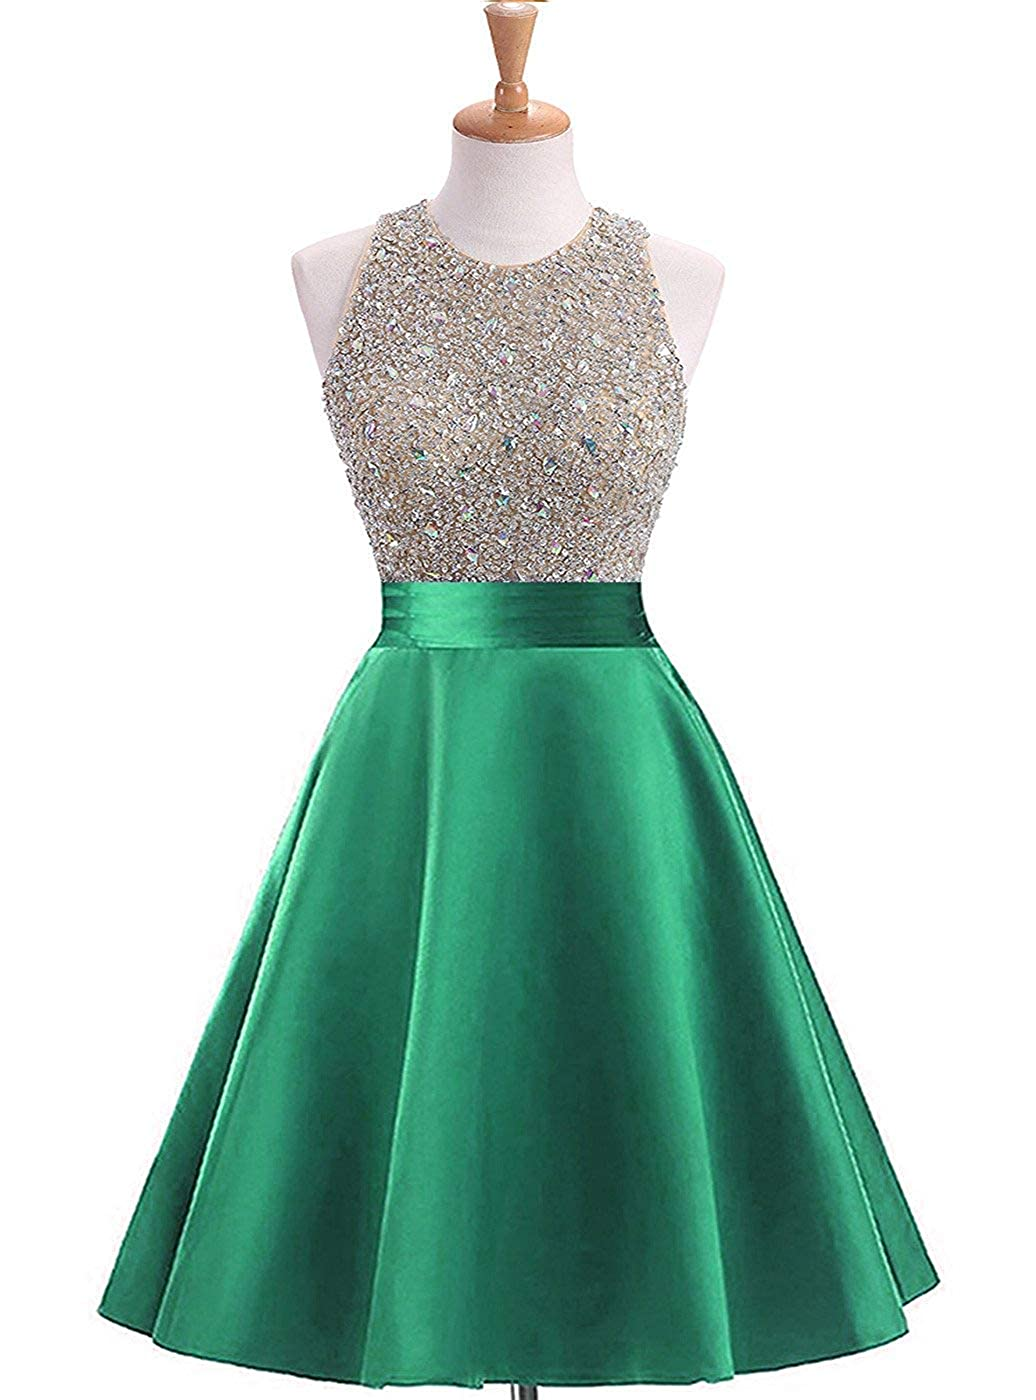 Greena Yuki Isabelle Women's Sequined Halter Cocktail Party Dress Satin Homecoming Dresses Short